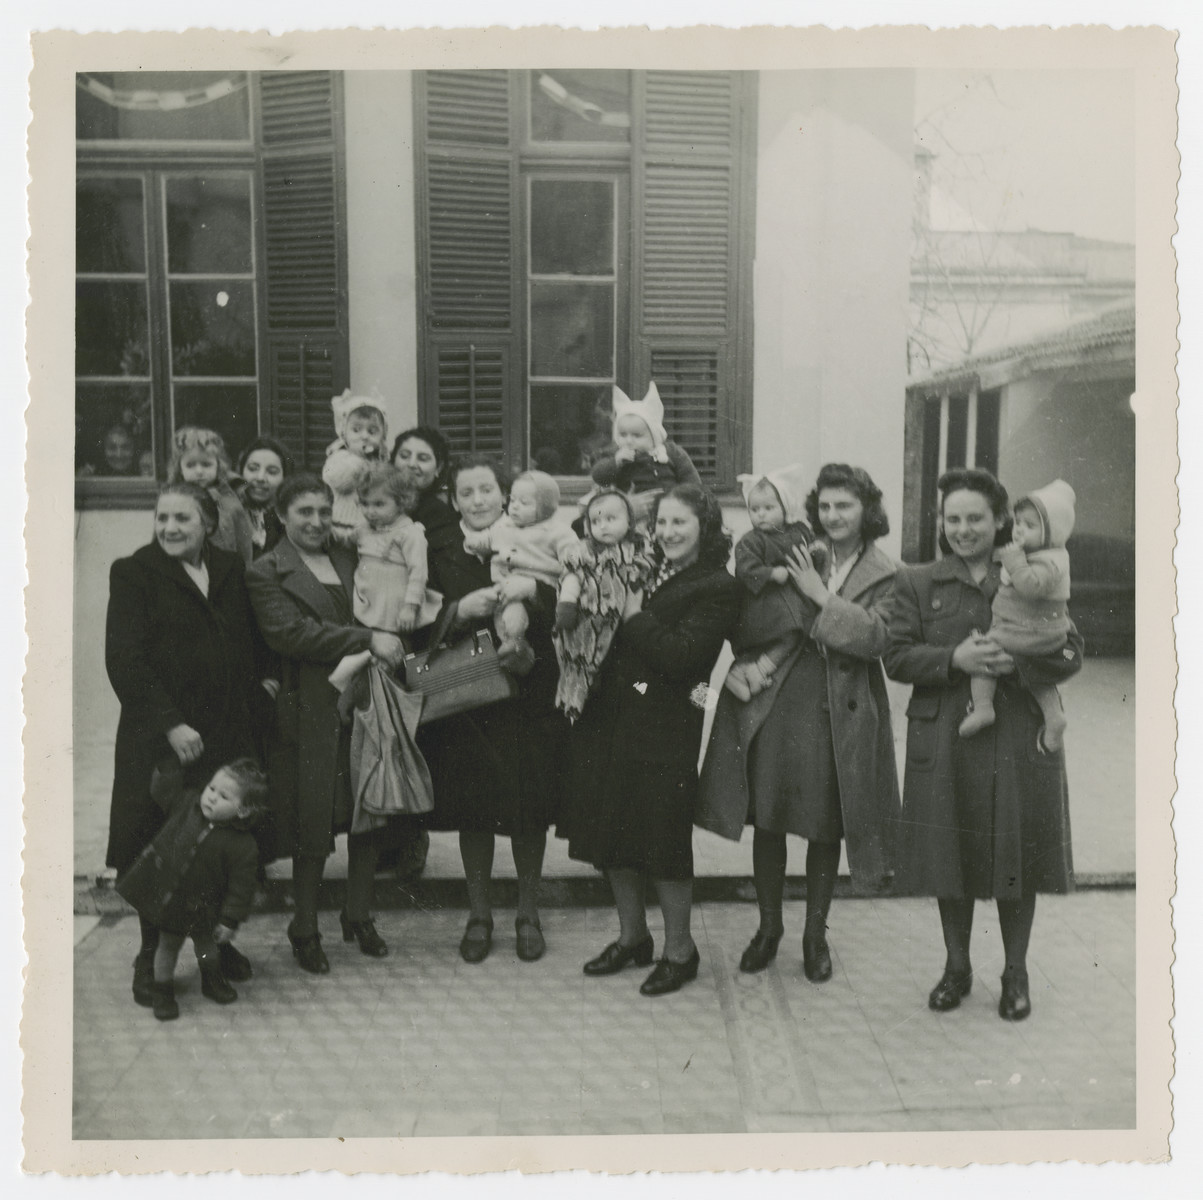 """Group portrait of Jewish women holding their babies.  Most had survived concentration camp.  The original caption reads: """"The youngest generation.  Some of these women were supposed to have been sterilized, but a Jewish doctor, an unsung hero, didn't do as he was told and was tossed into the gas chamber as a result."""""""